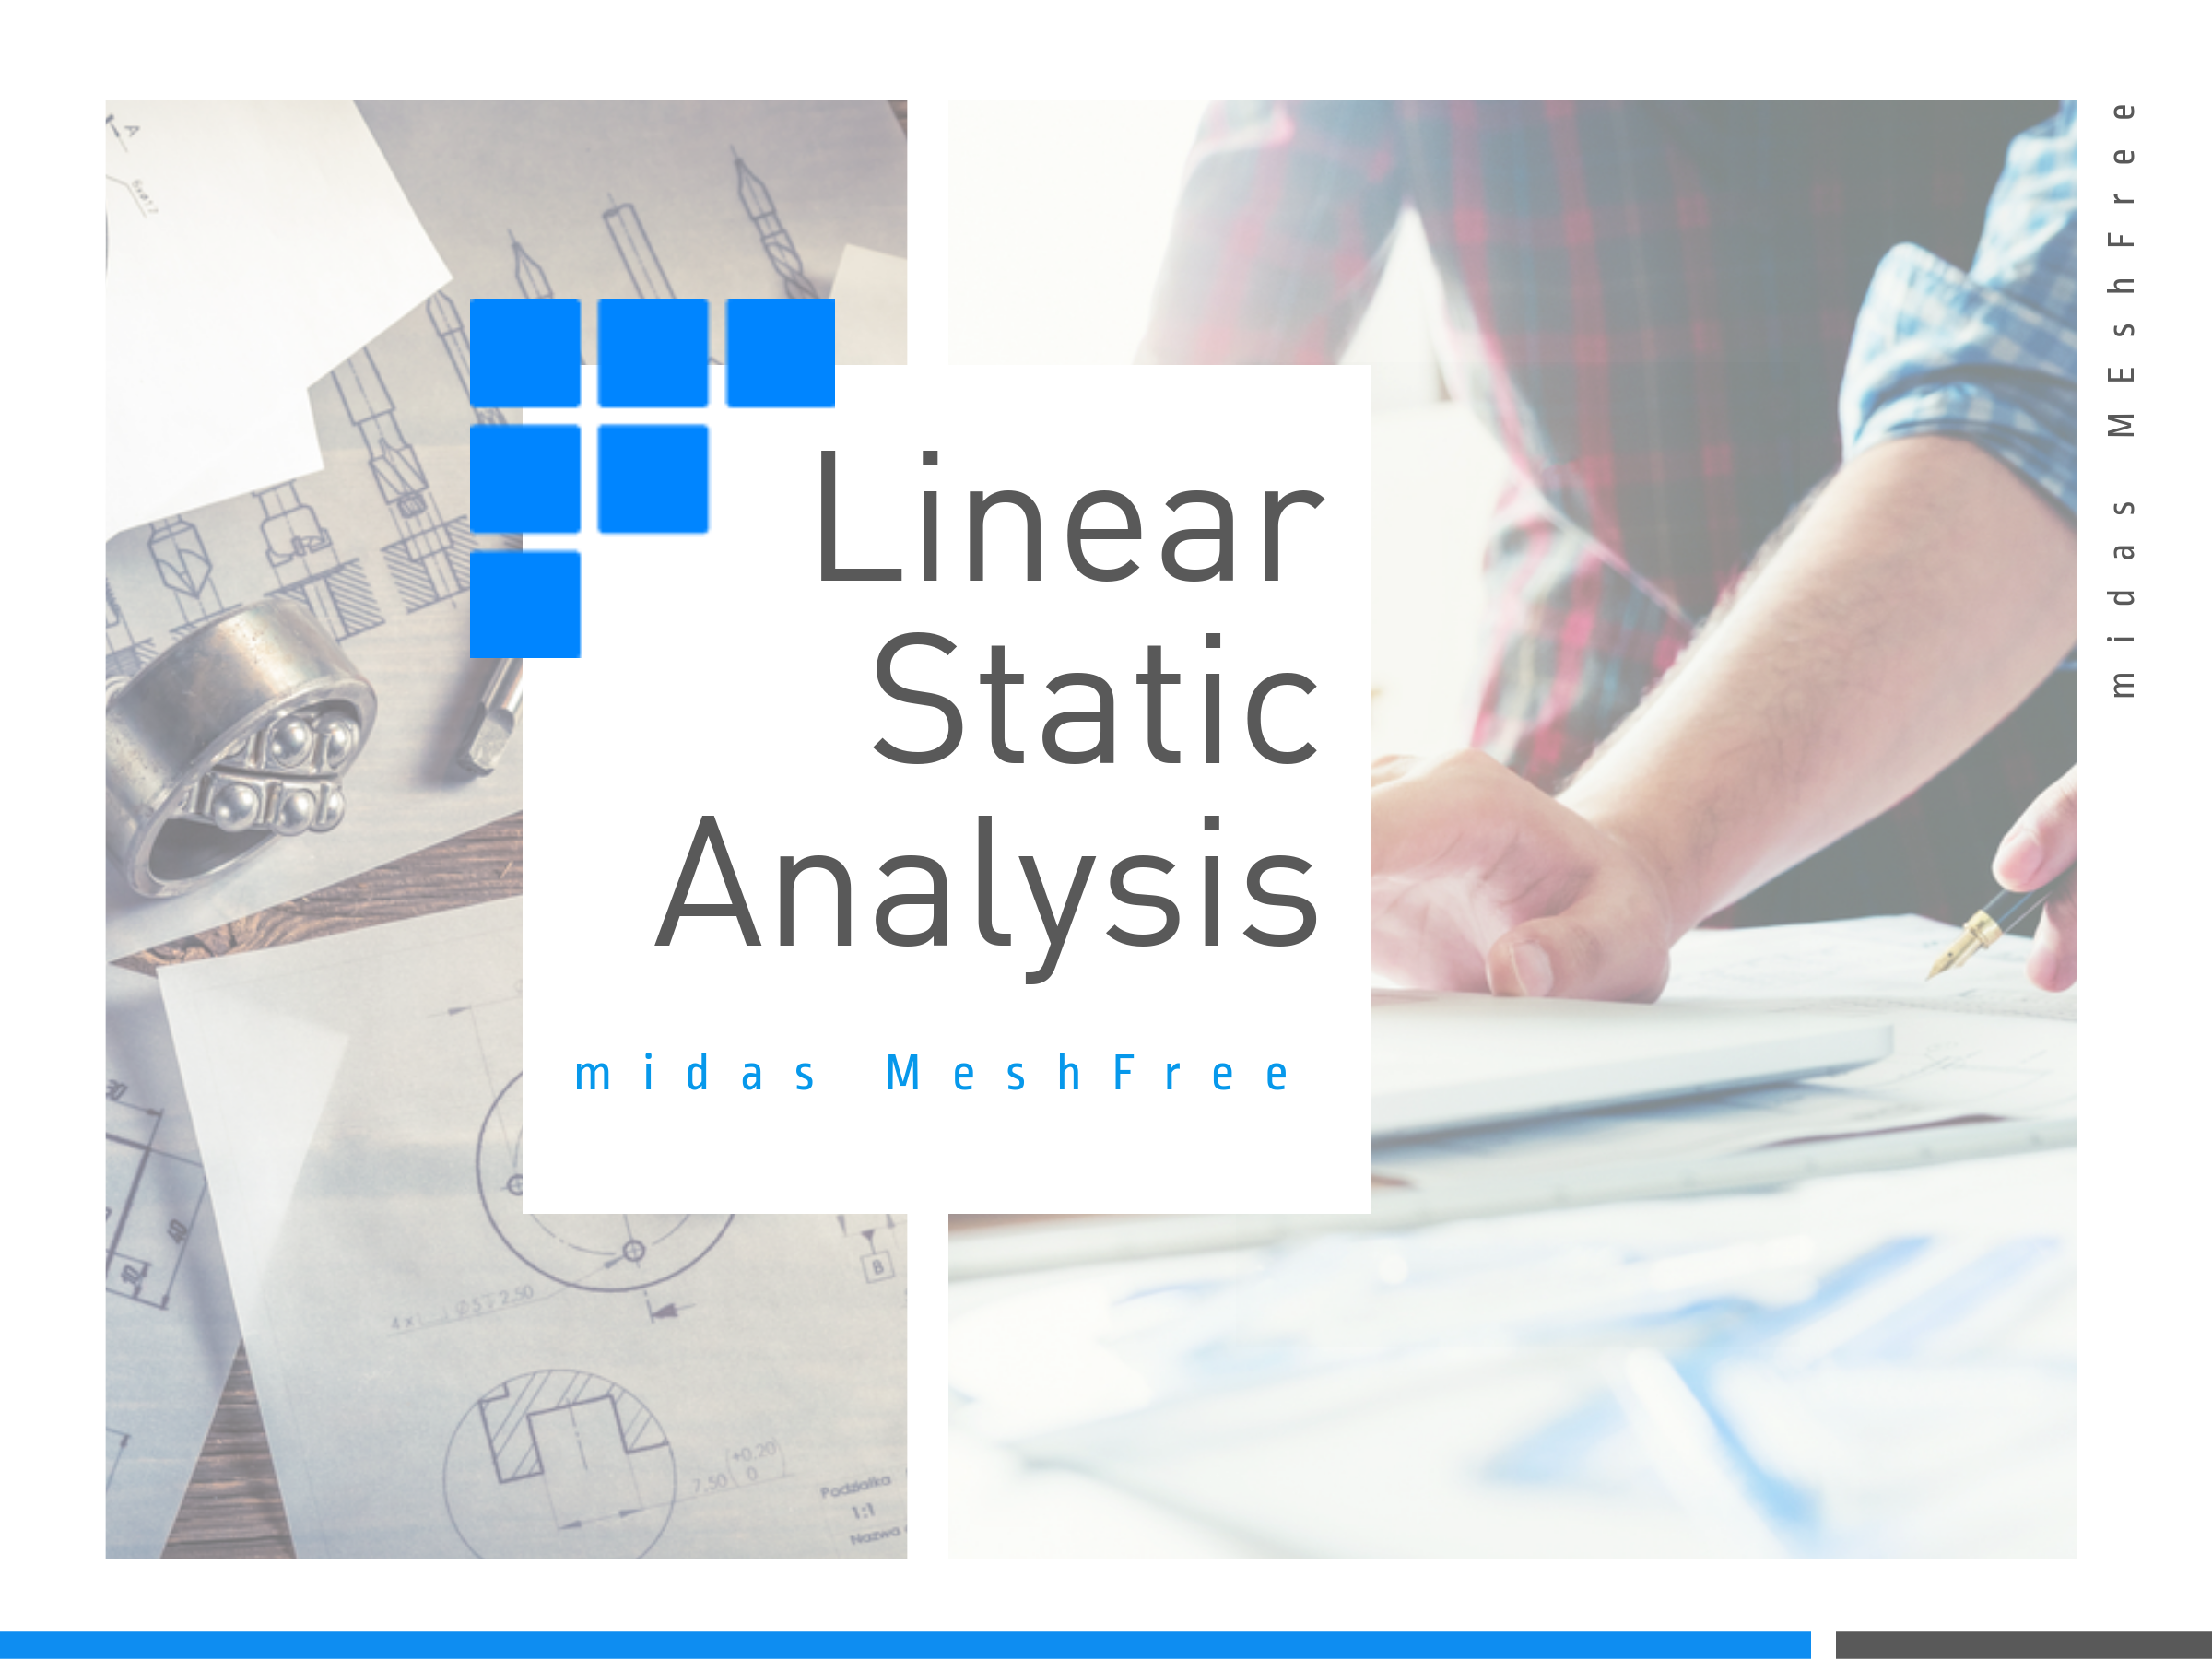 Linear Static Analysis with midas MeshFree (Slide 1)